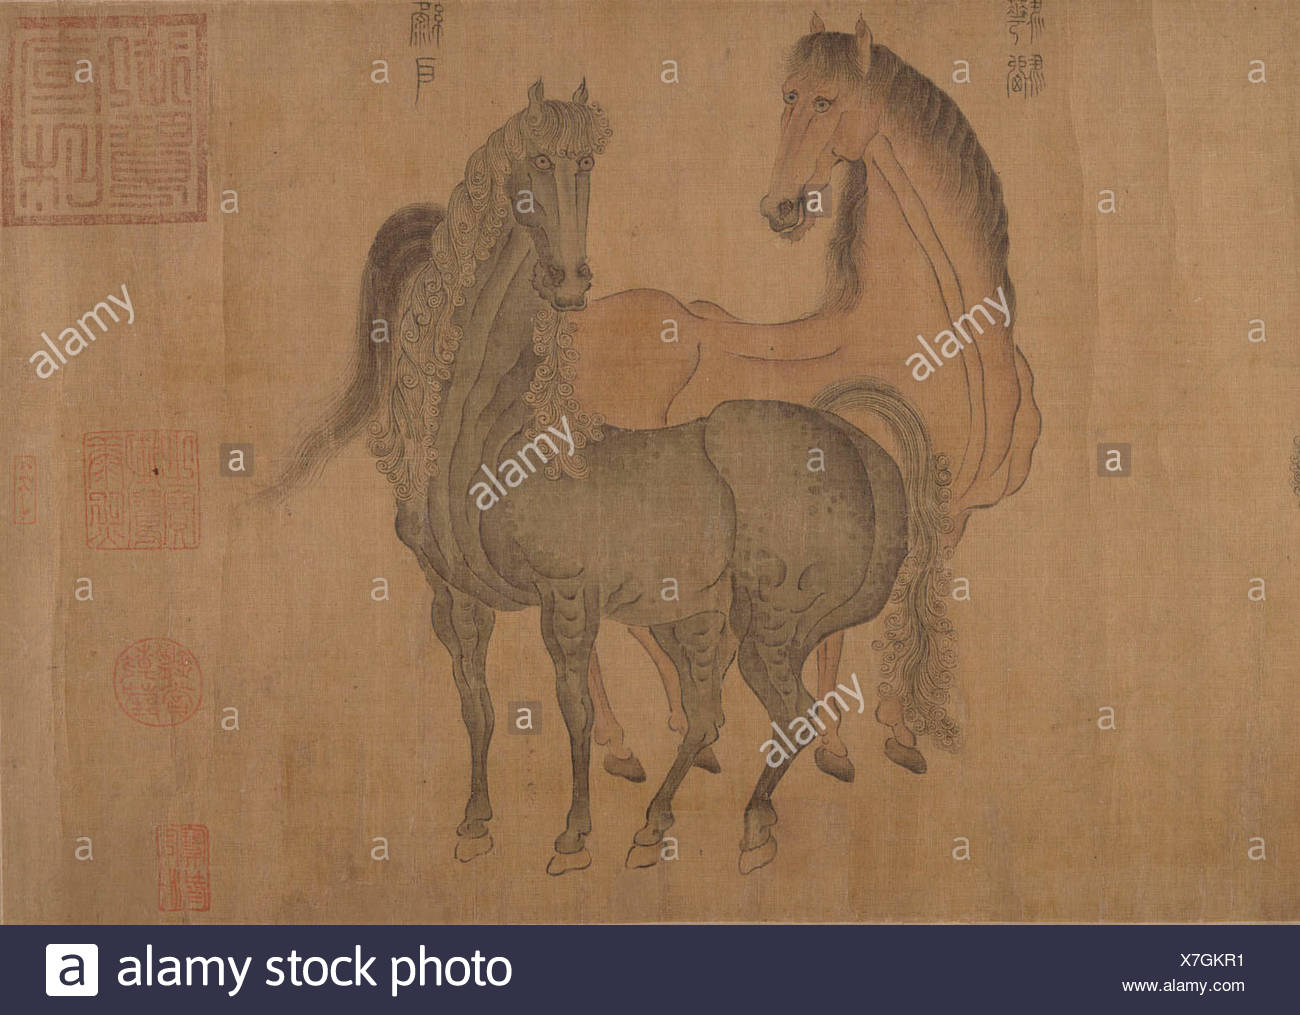 Chinese Ink Painting Horse High Resolution Stock Photography And Images Alamy